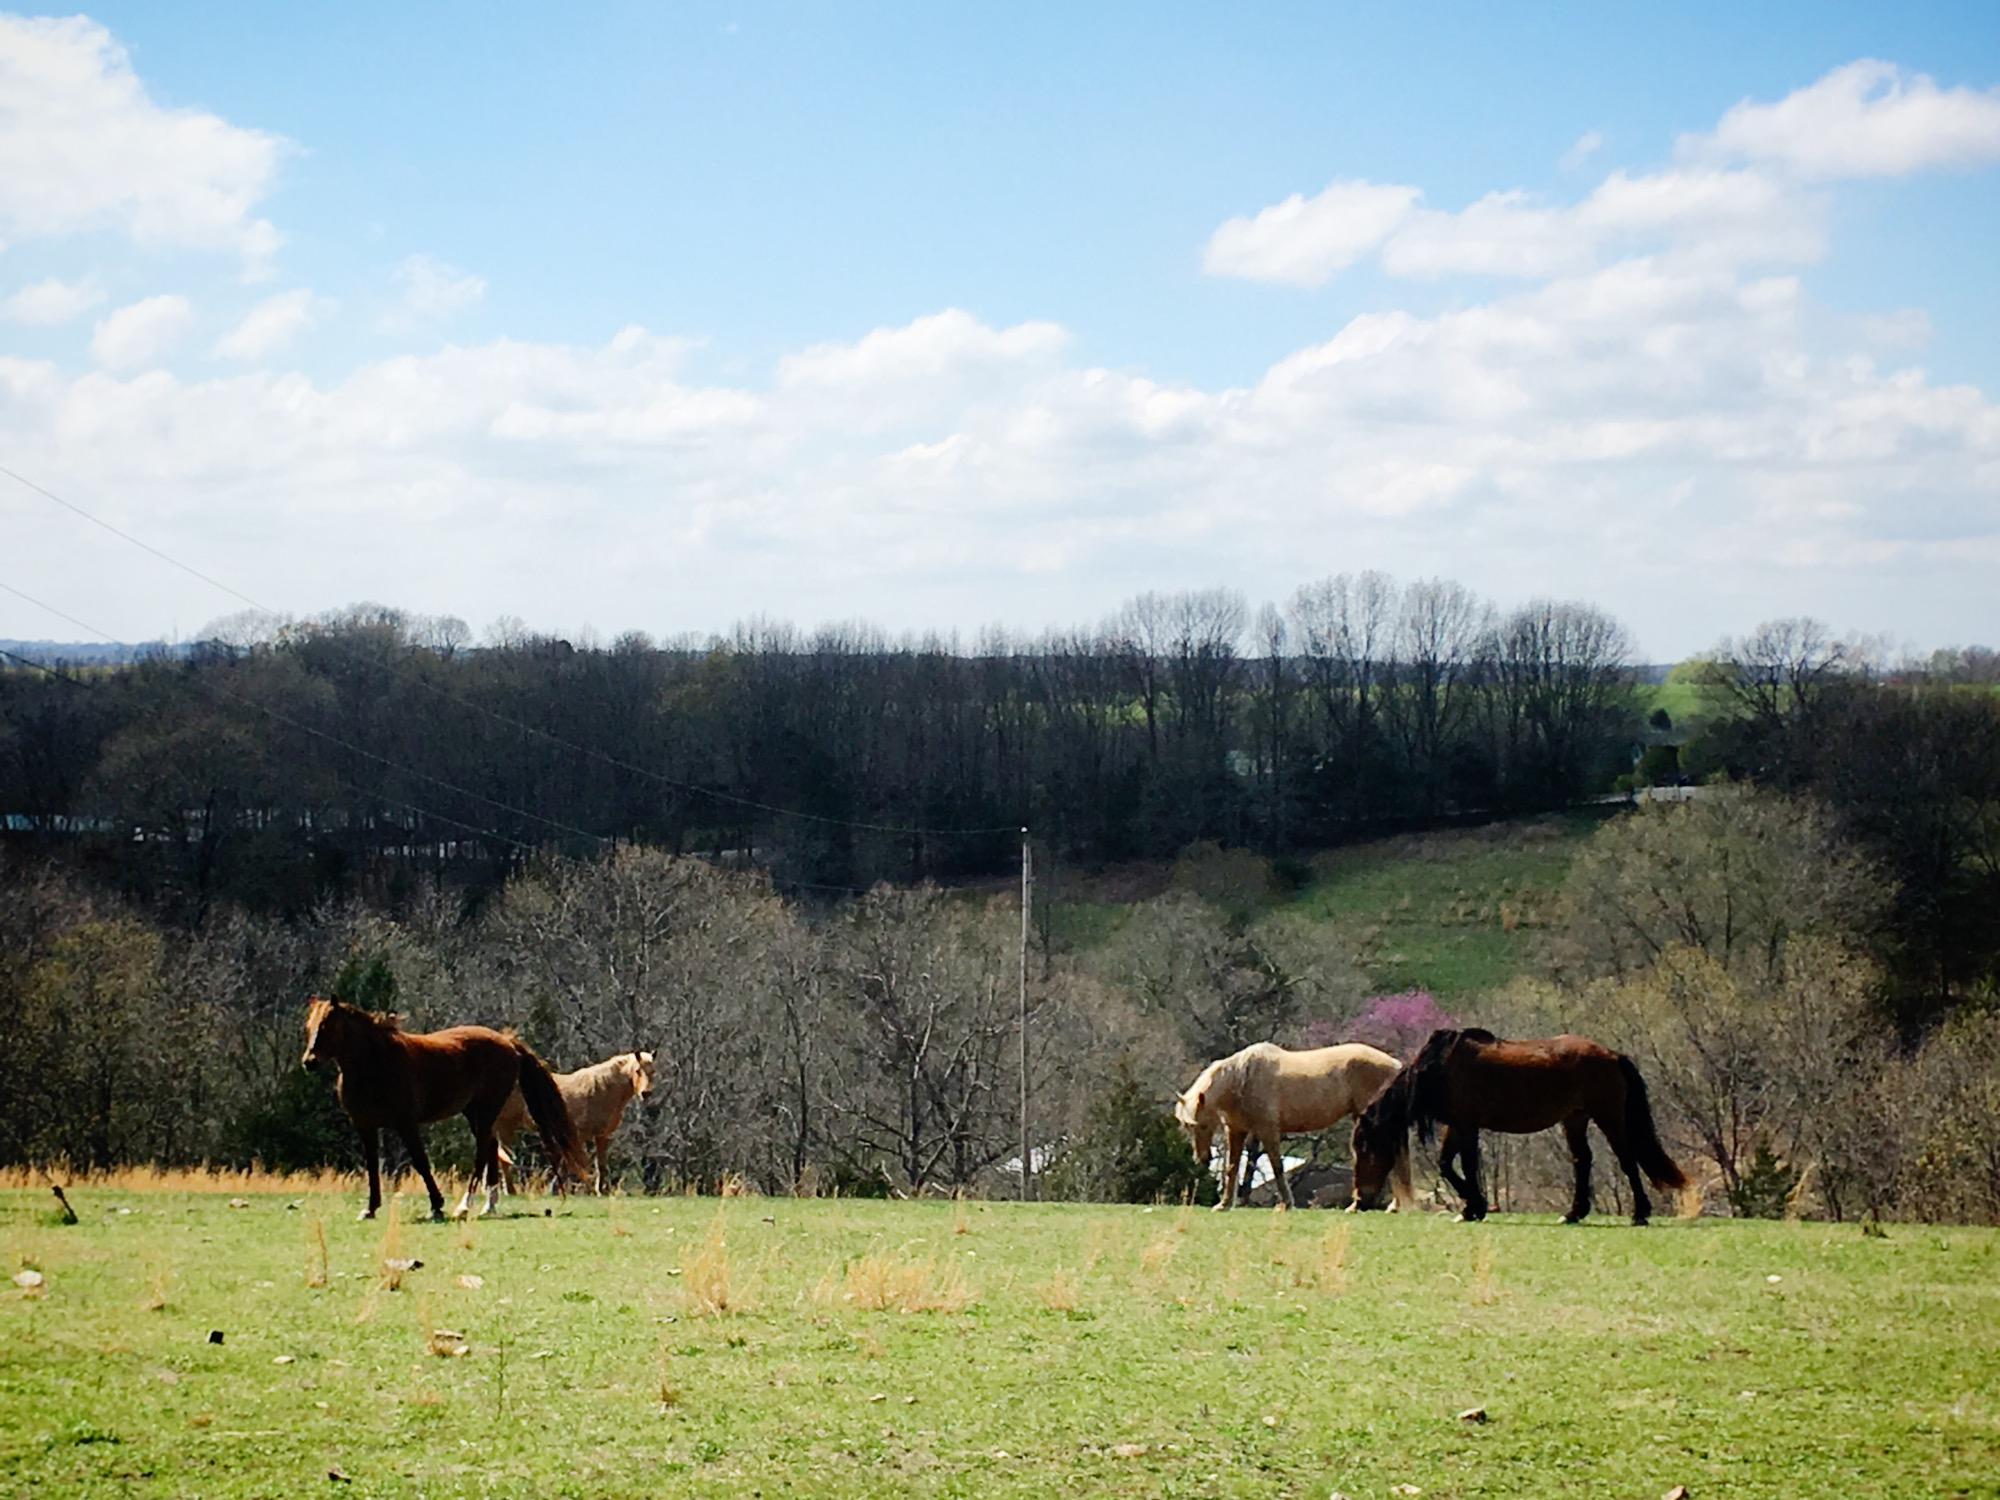 Horses on a country drive